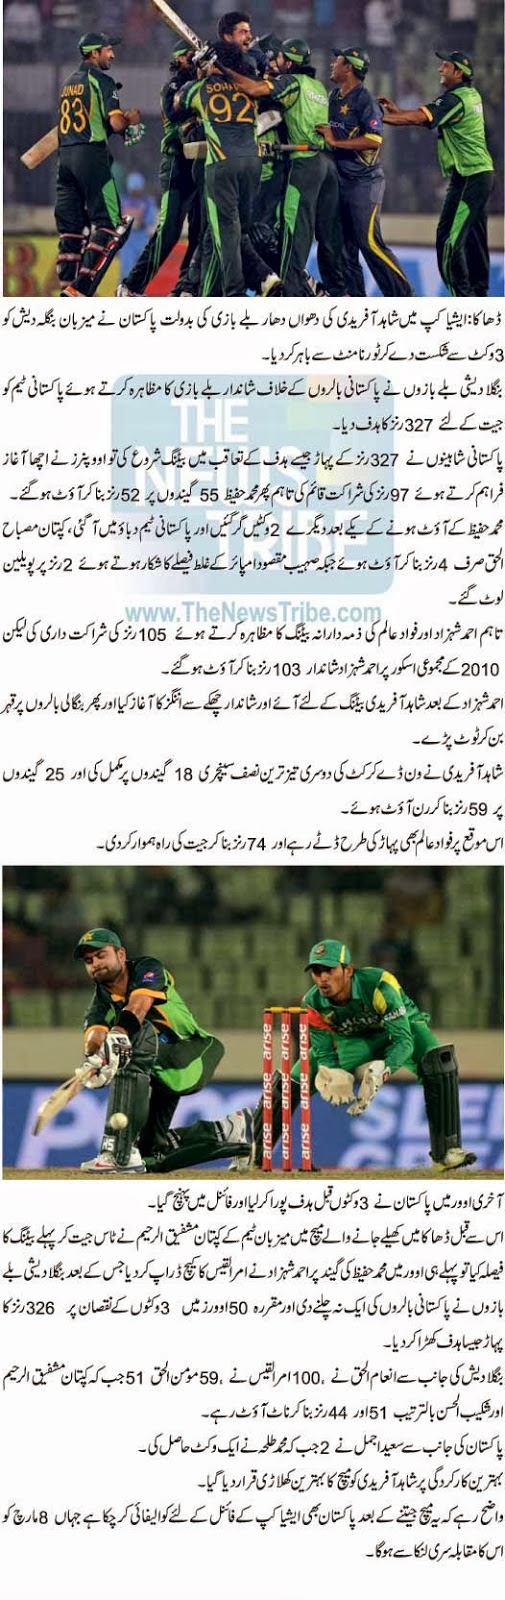 Asia, Asia Cup, ASia Cup News, sports news, Cricket News, Latest, Latest News, Cricket, Pakistan Team, Shaheen, Bangladesh, Pakistan, Pakistan Vs Bangladesh,